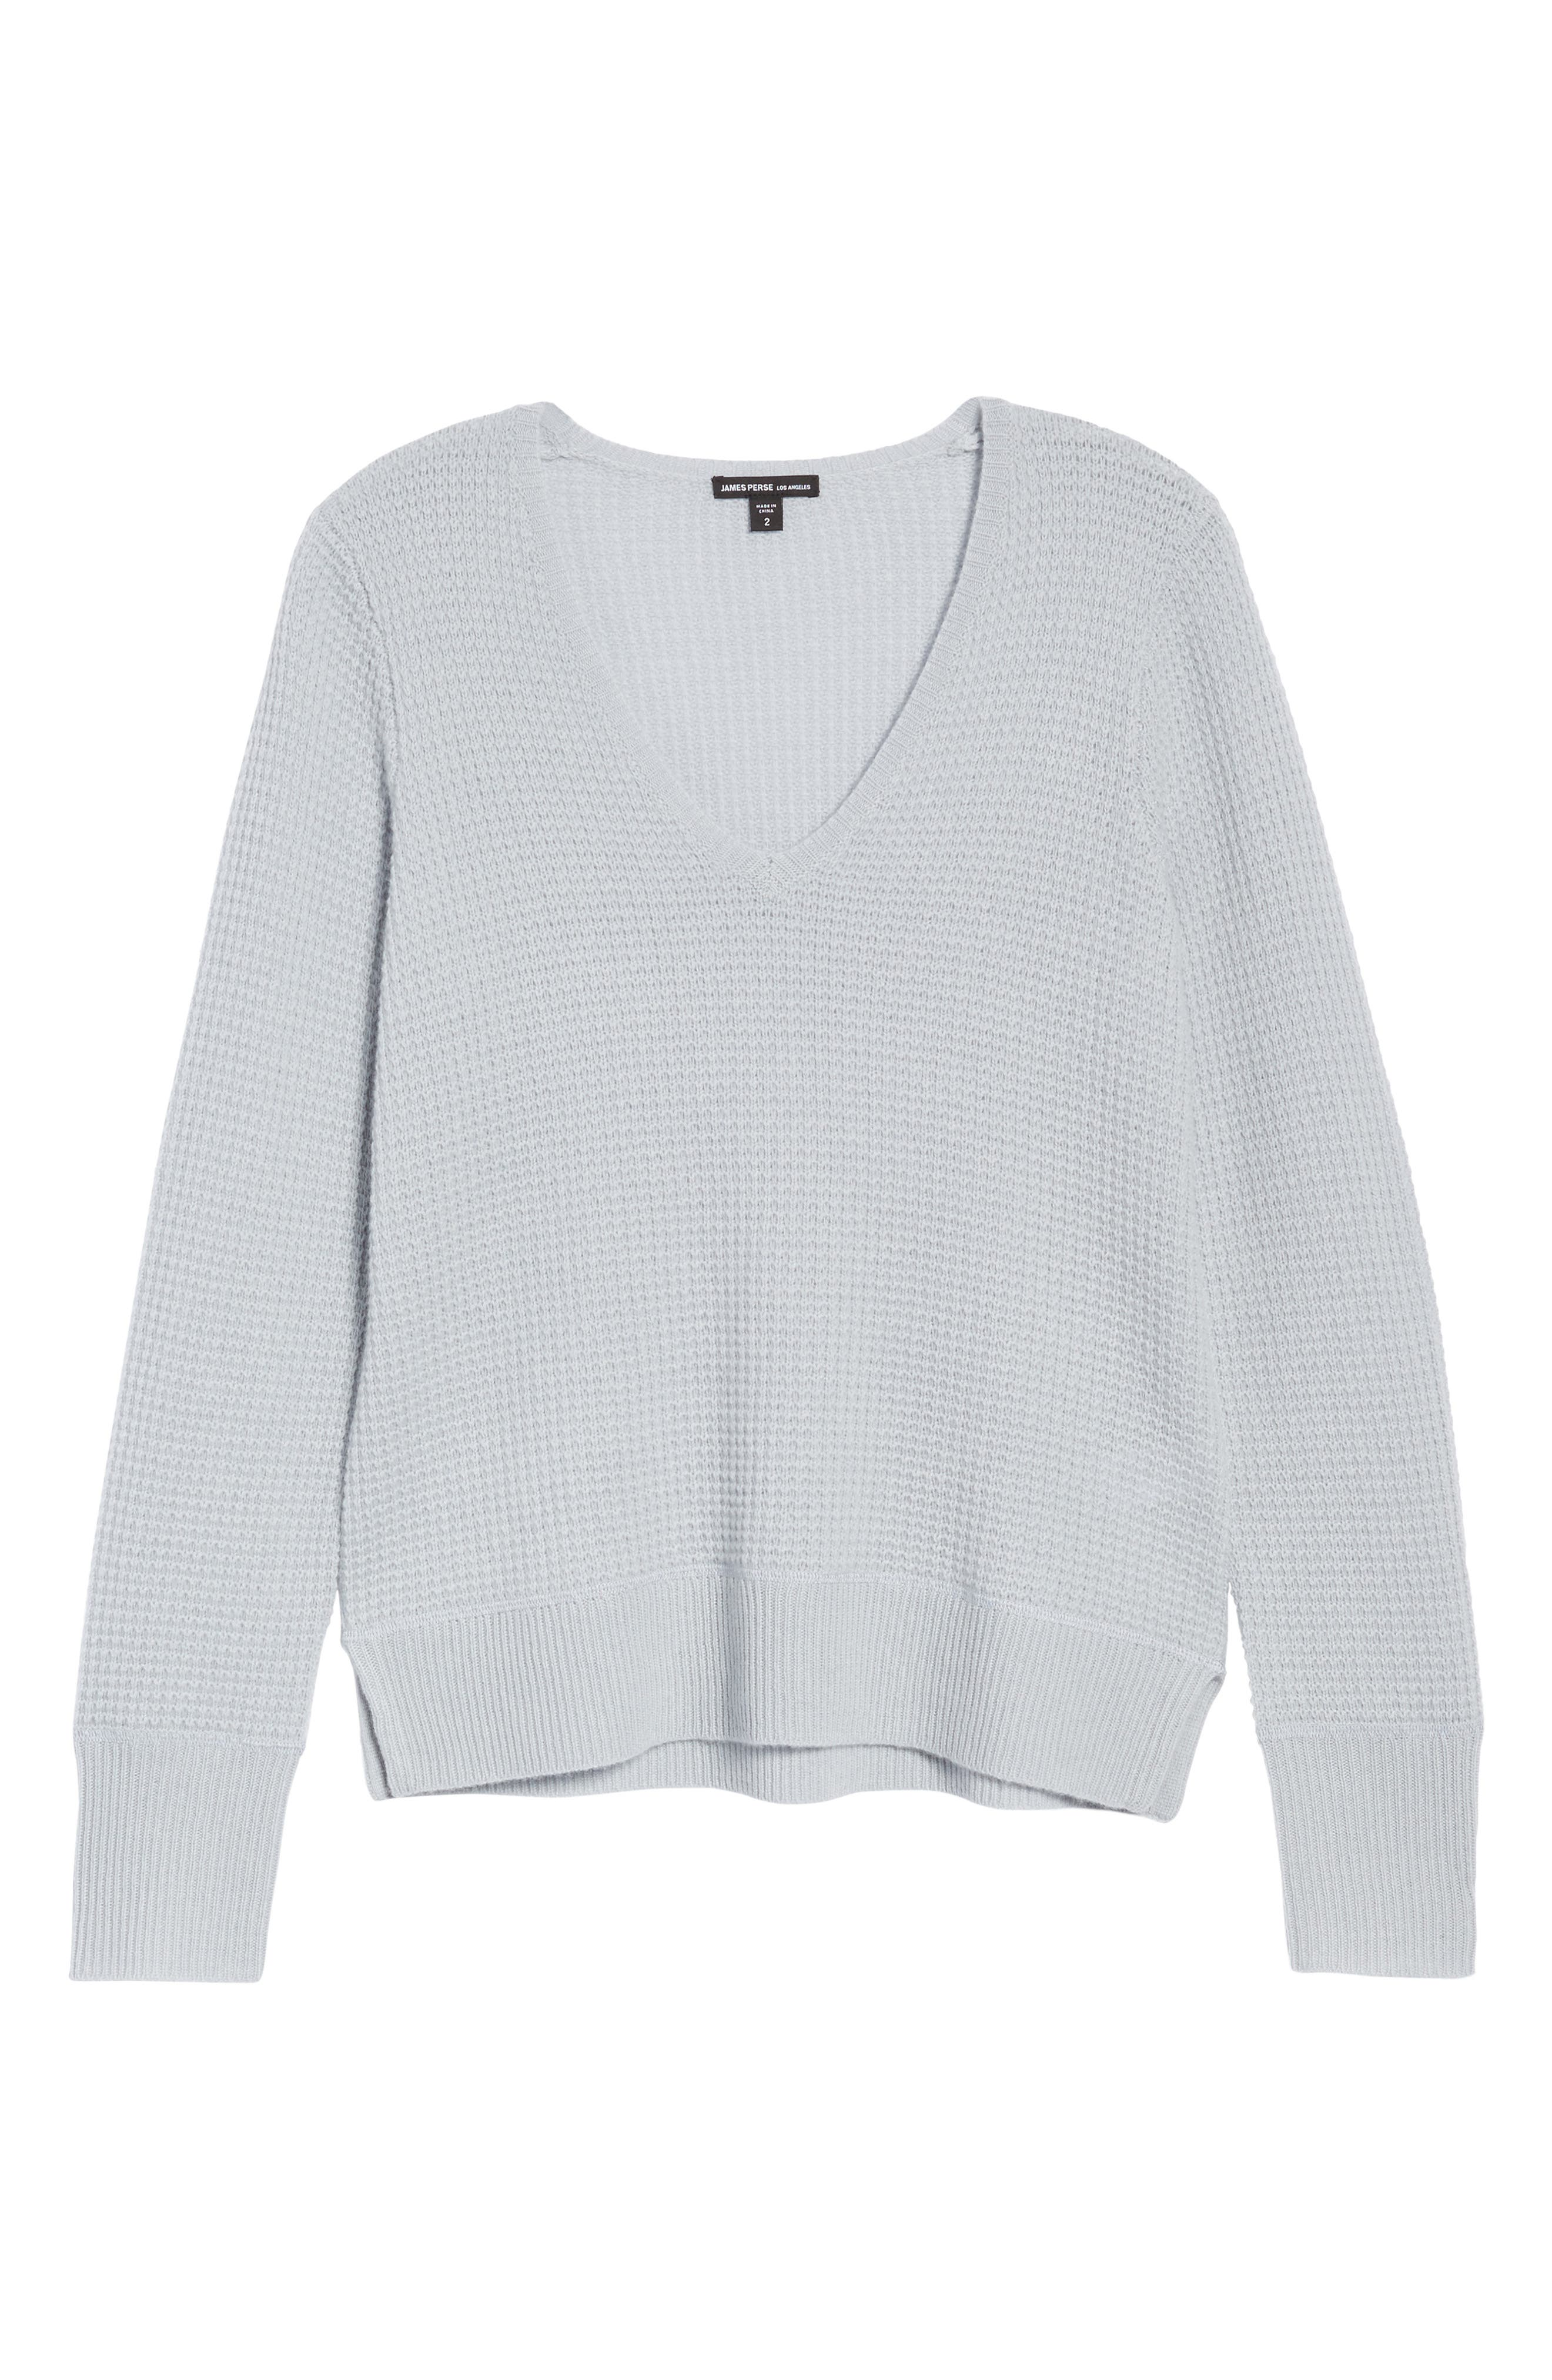 Cashmere Thermal Sweater,                             Alternate thumbnail 6, color,                             456